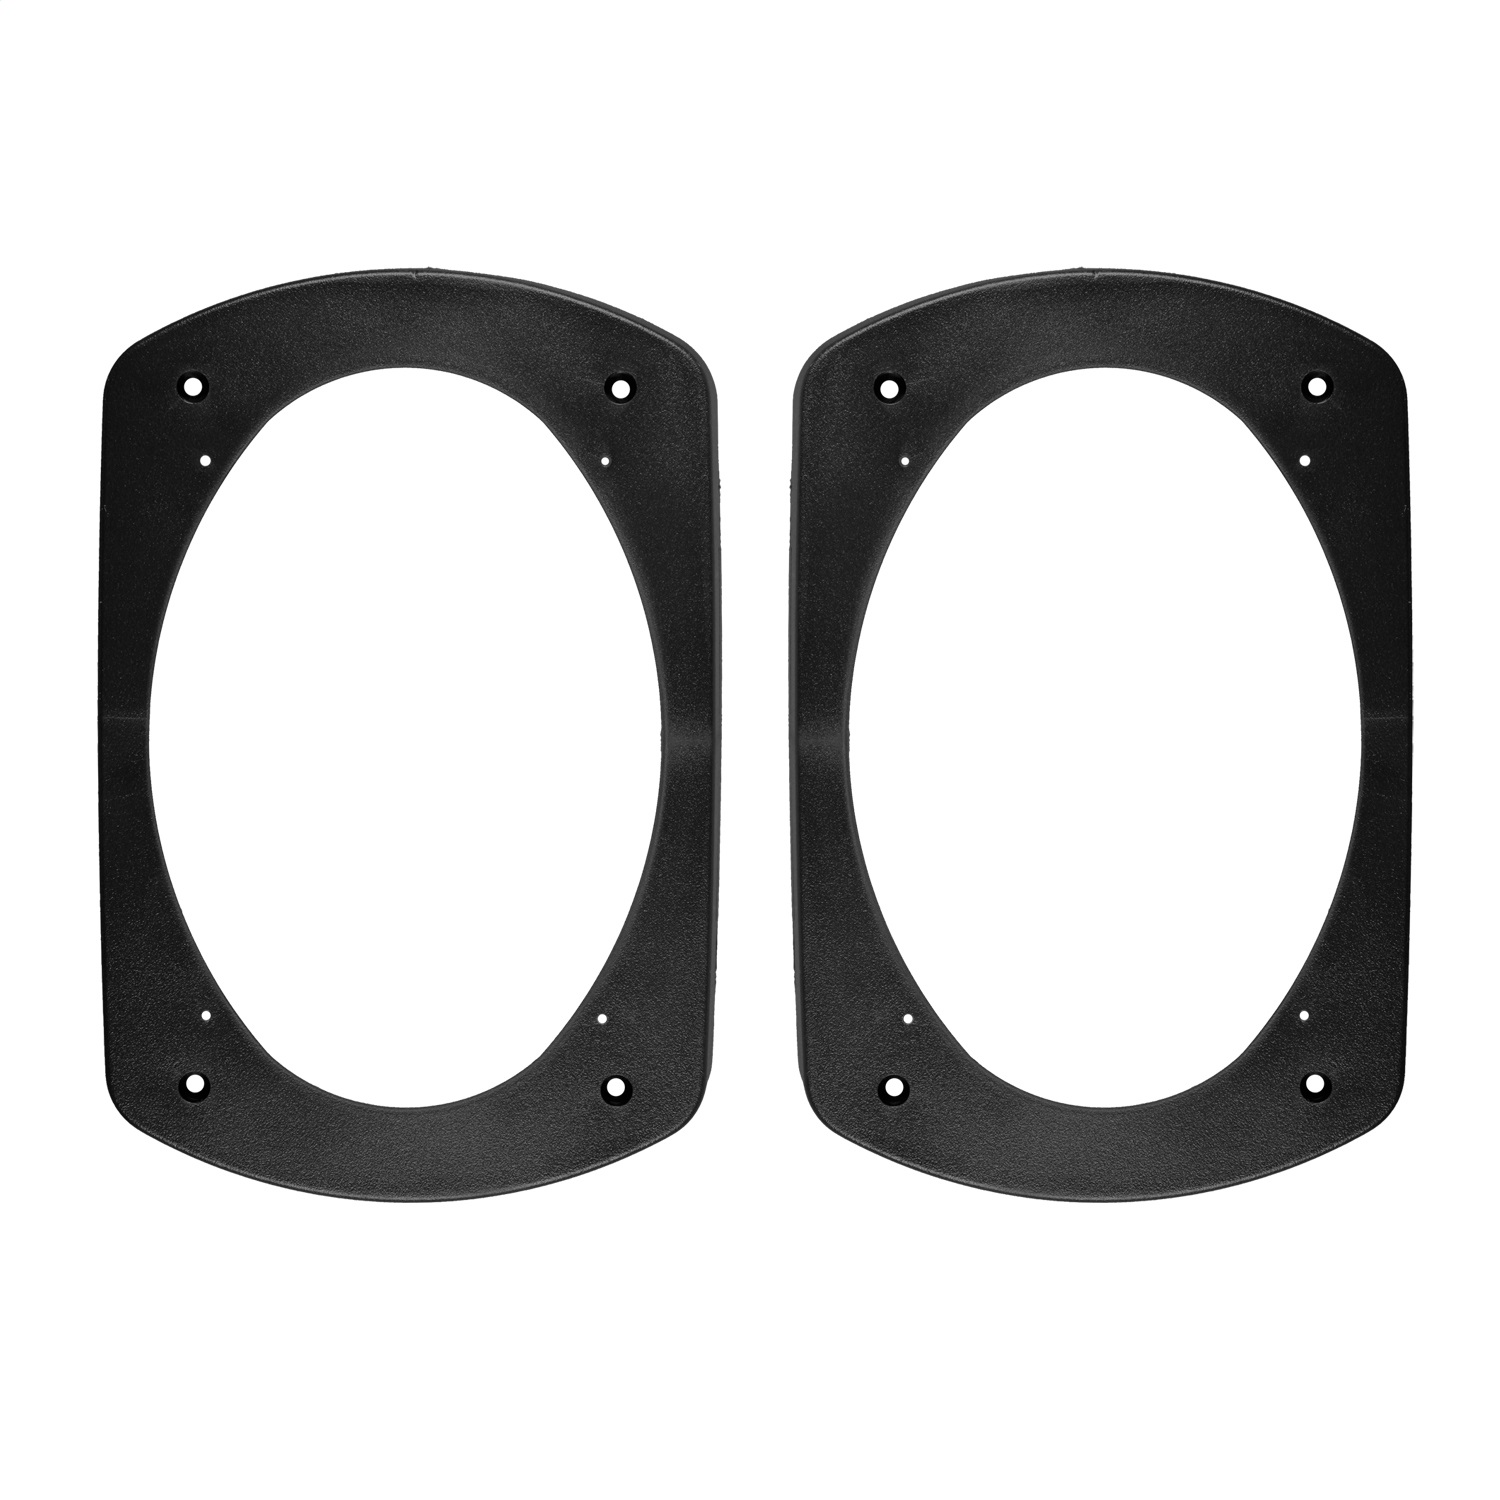 Metra 82-6900 Universal Speaker Spacers